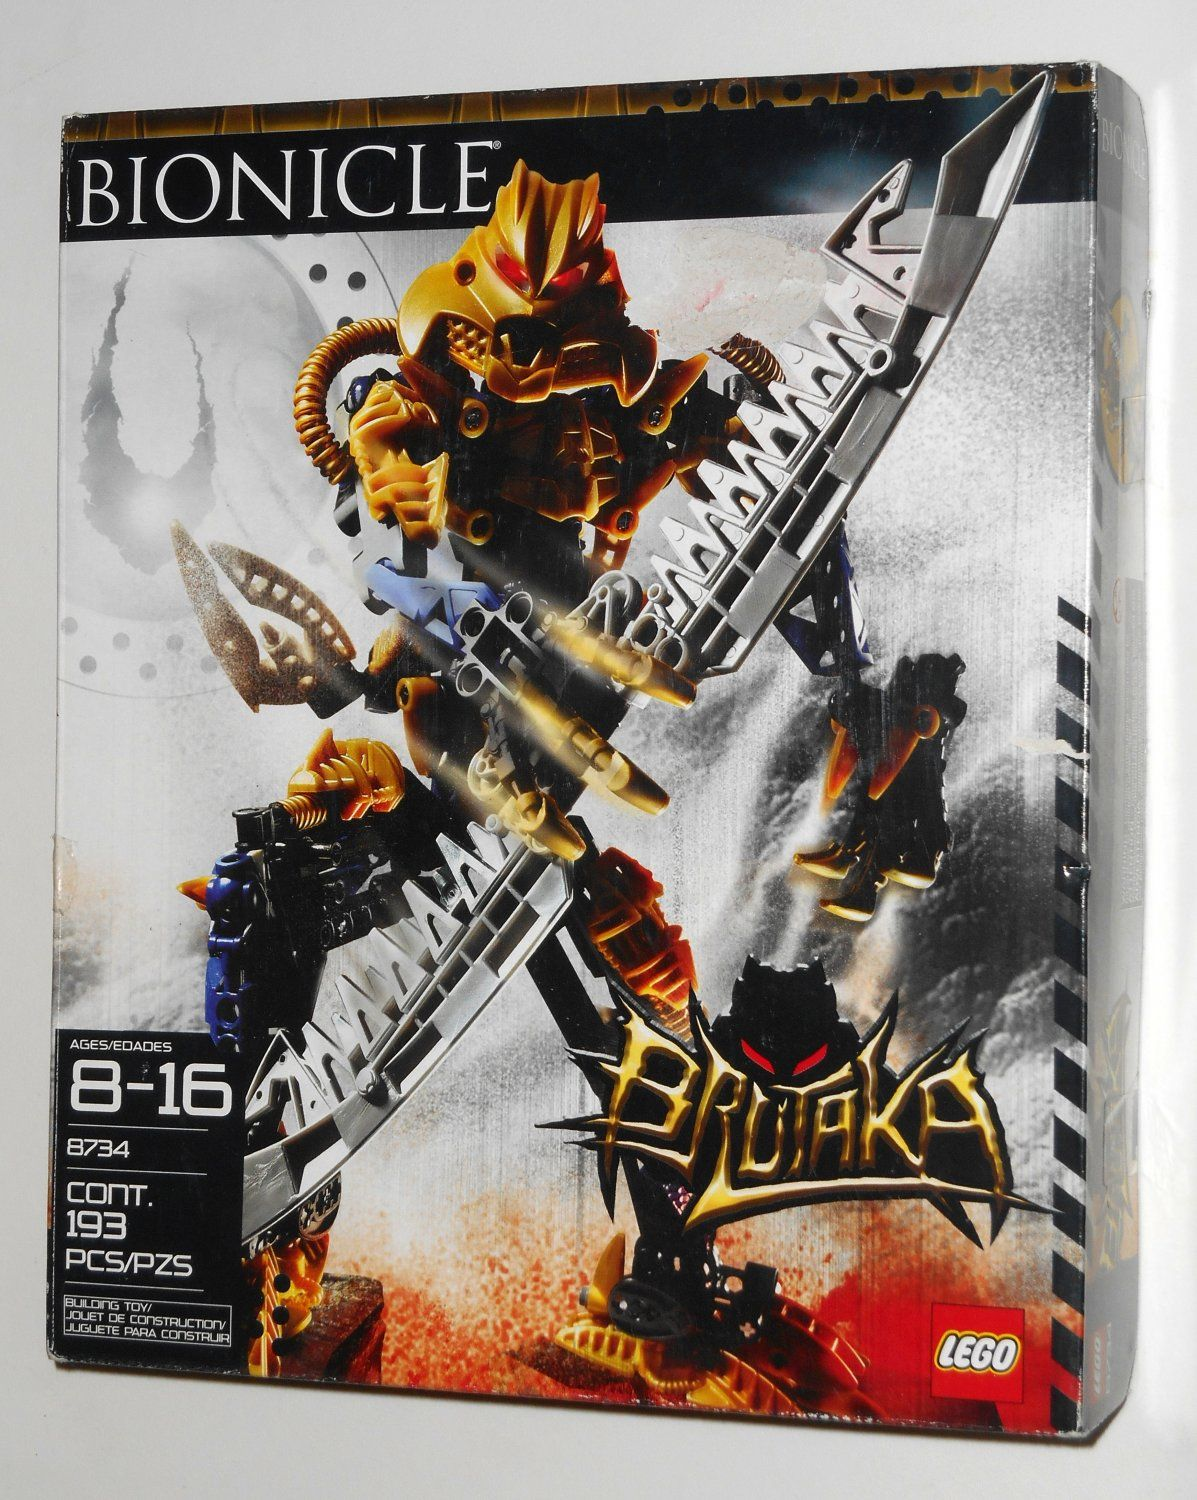 For Sale Lego Bionicle Brutaka 8734 Open Box Factory Sealed Bags